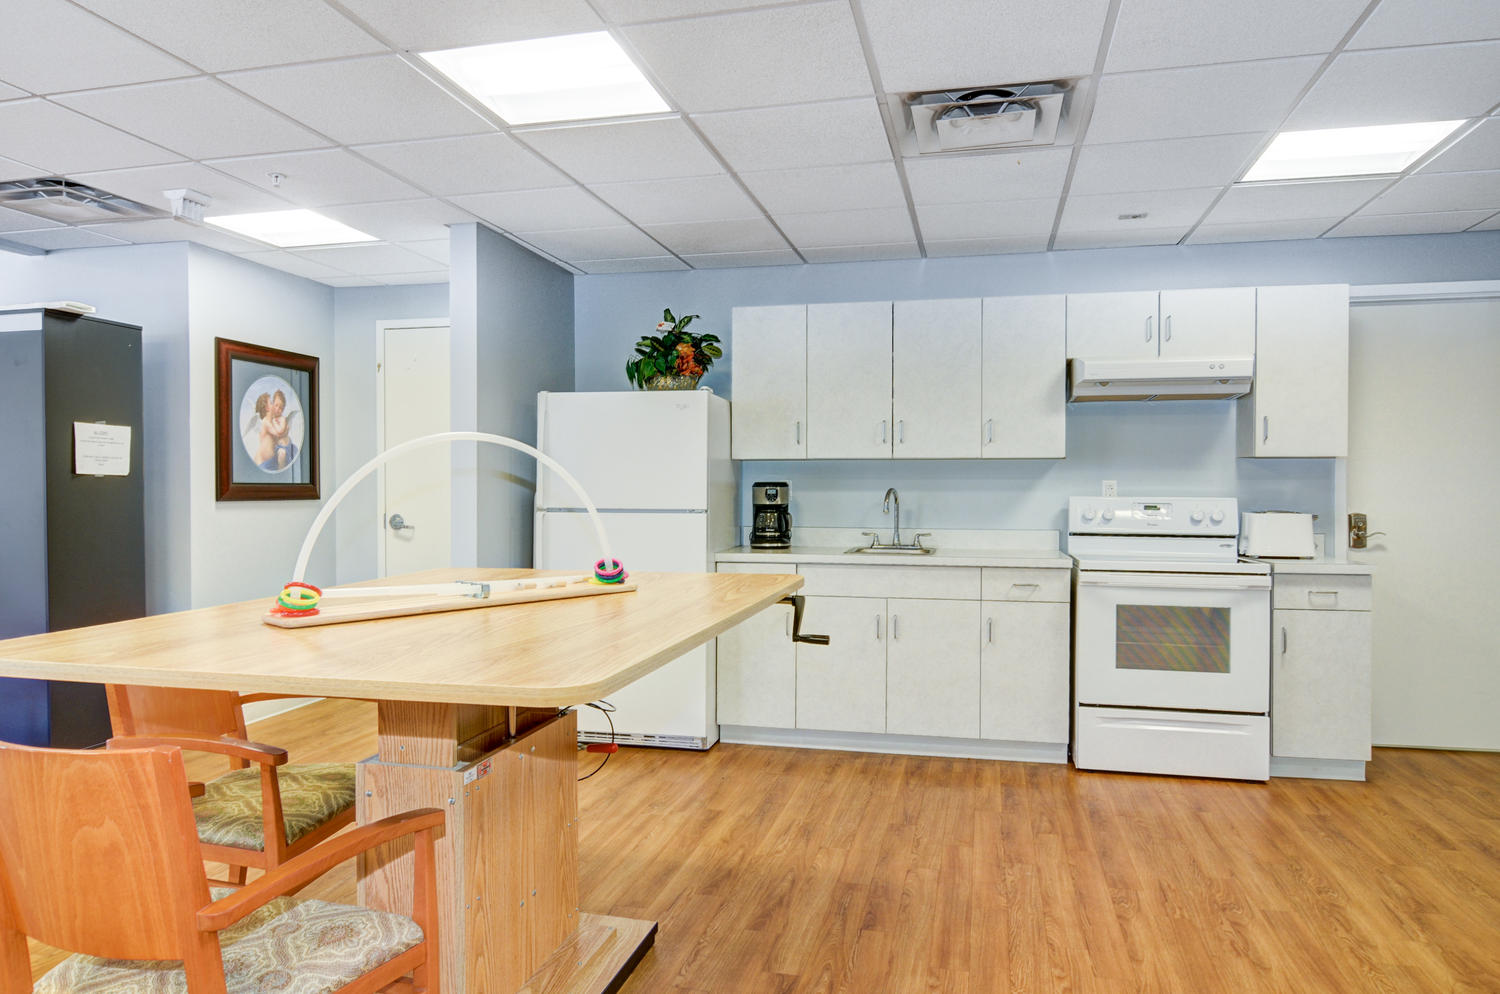 Kitchen area in Stonerise Morgantown Physical Therapy and Rehabilitation room